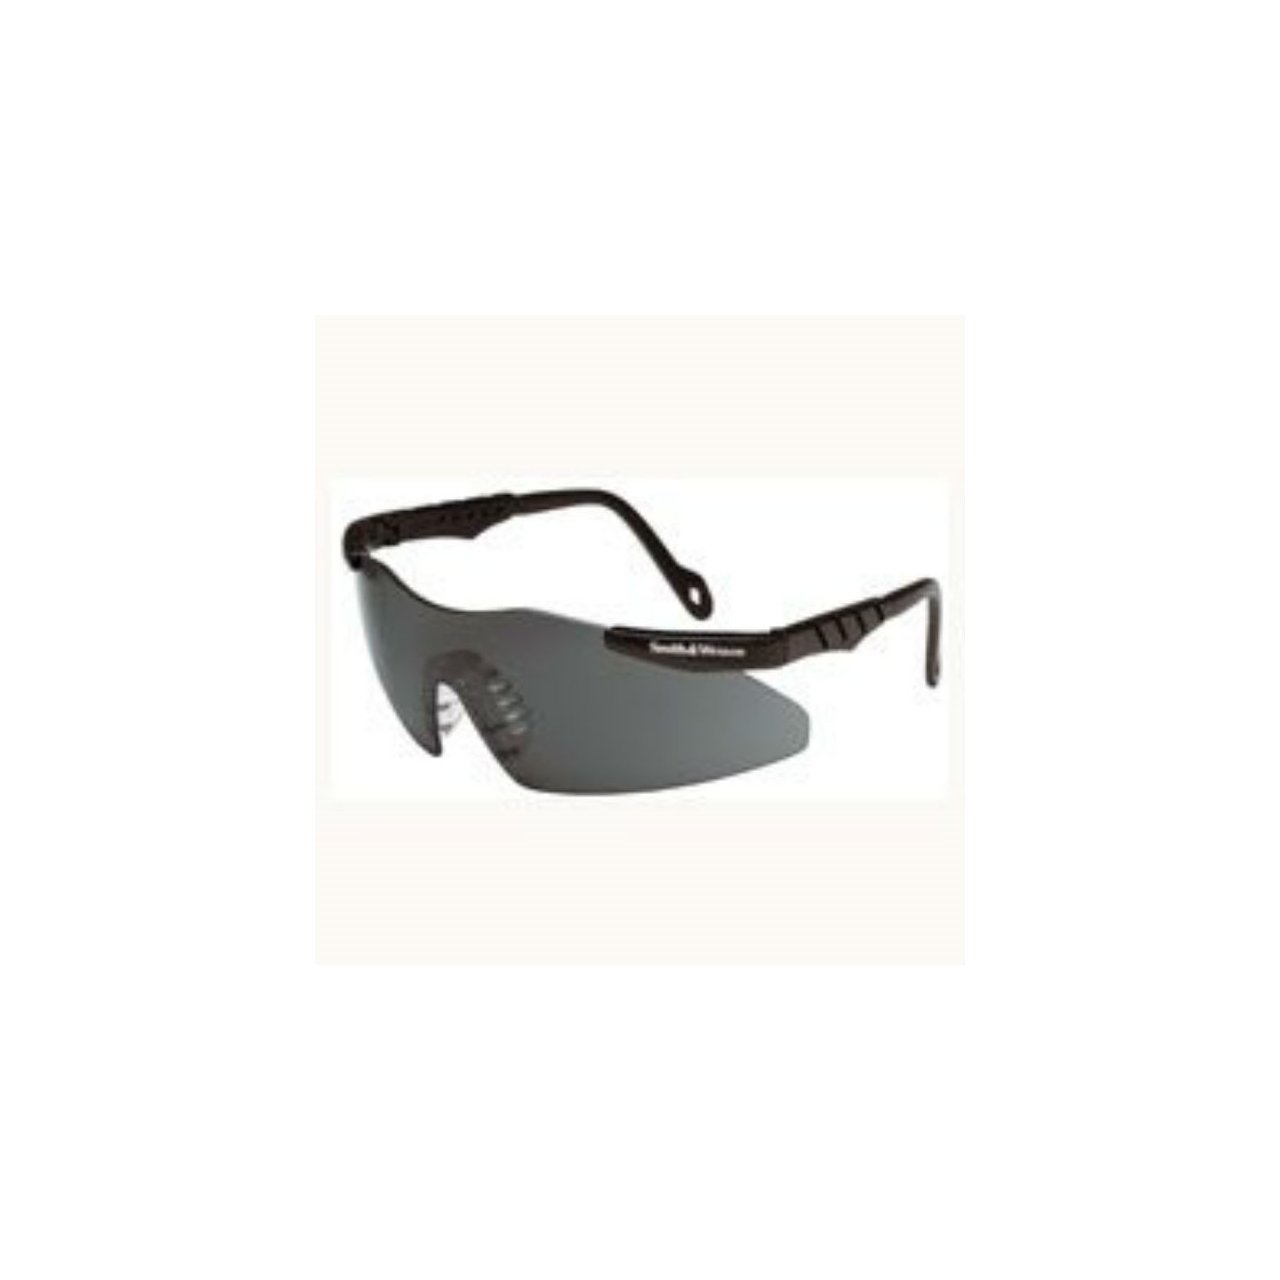 Jackson Smith and Wesson Magnum Style Safety Glasses